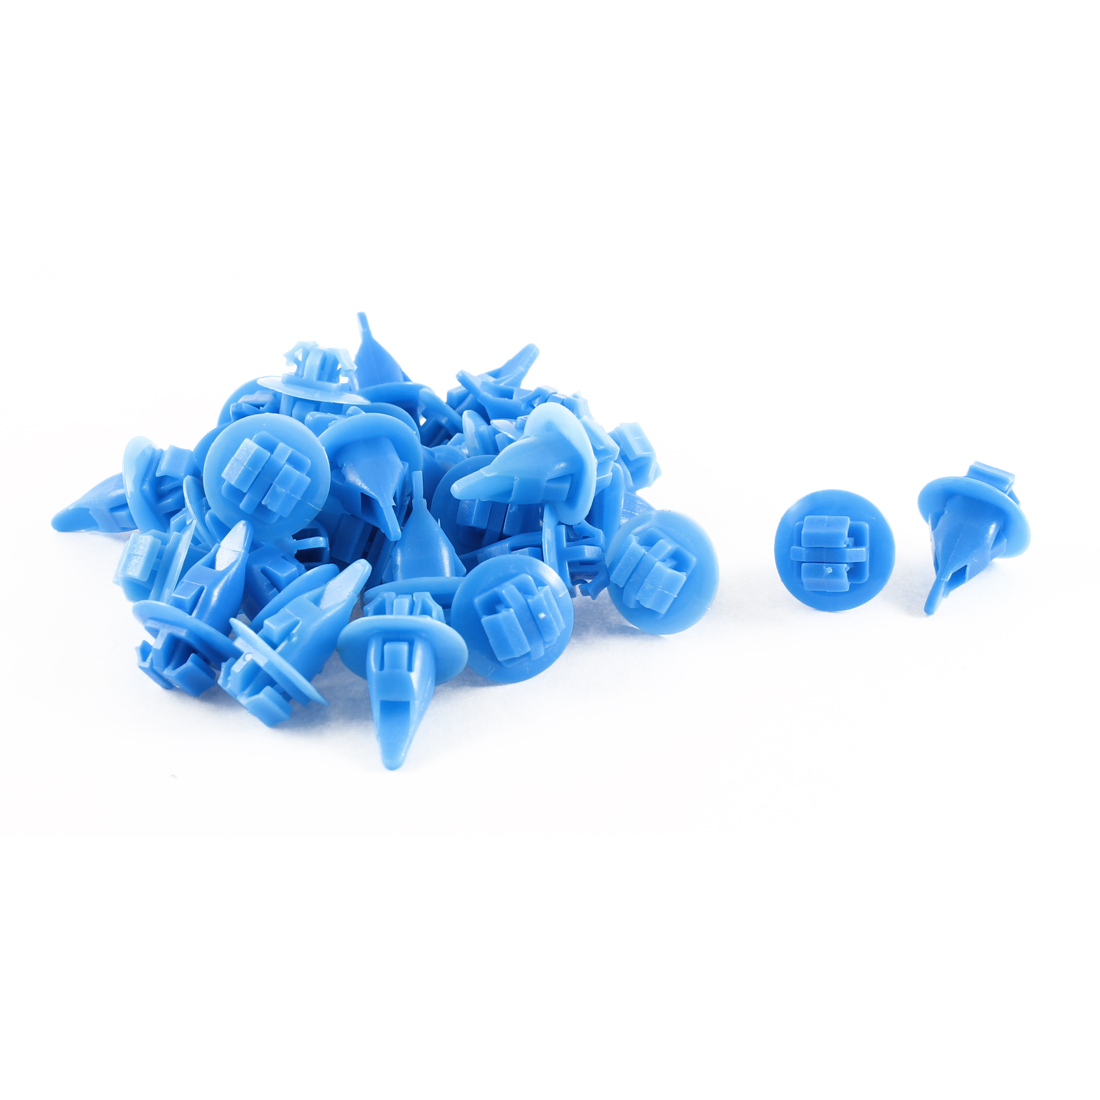 32 Pcs Blue Push-Type Moulding Fastener Retainer 11mm Hole for Toyota